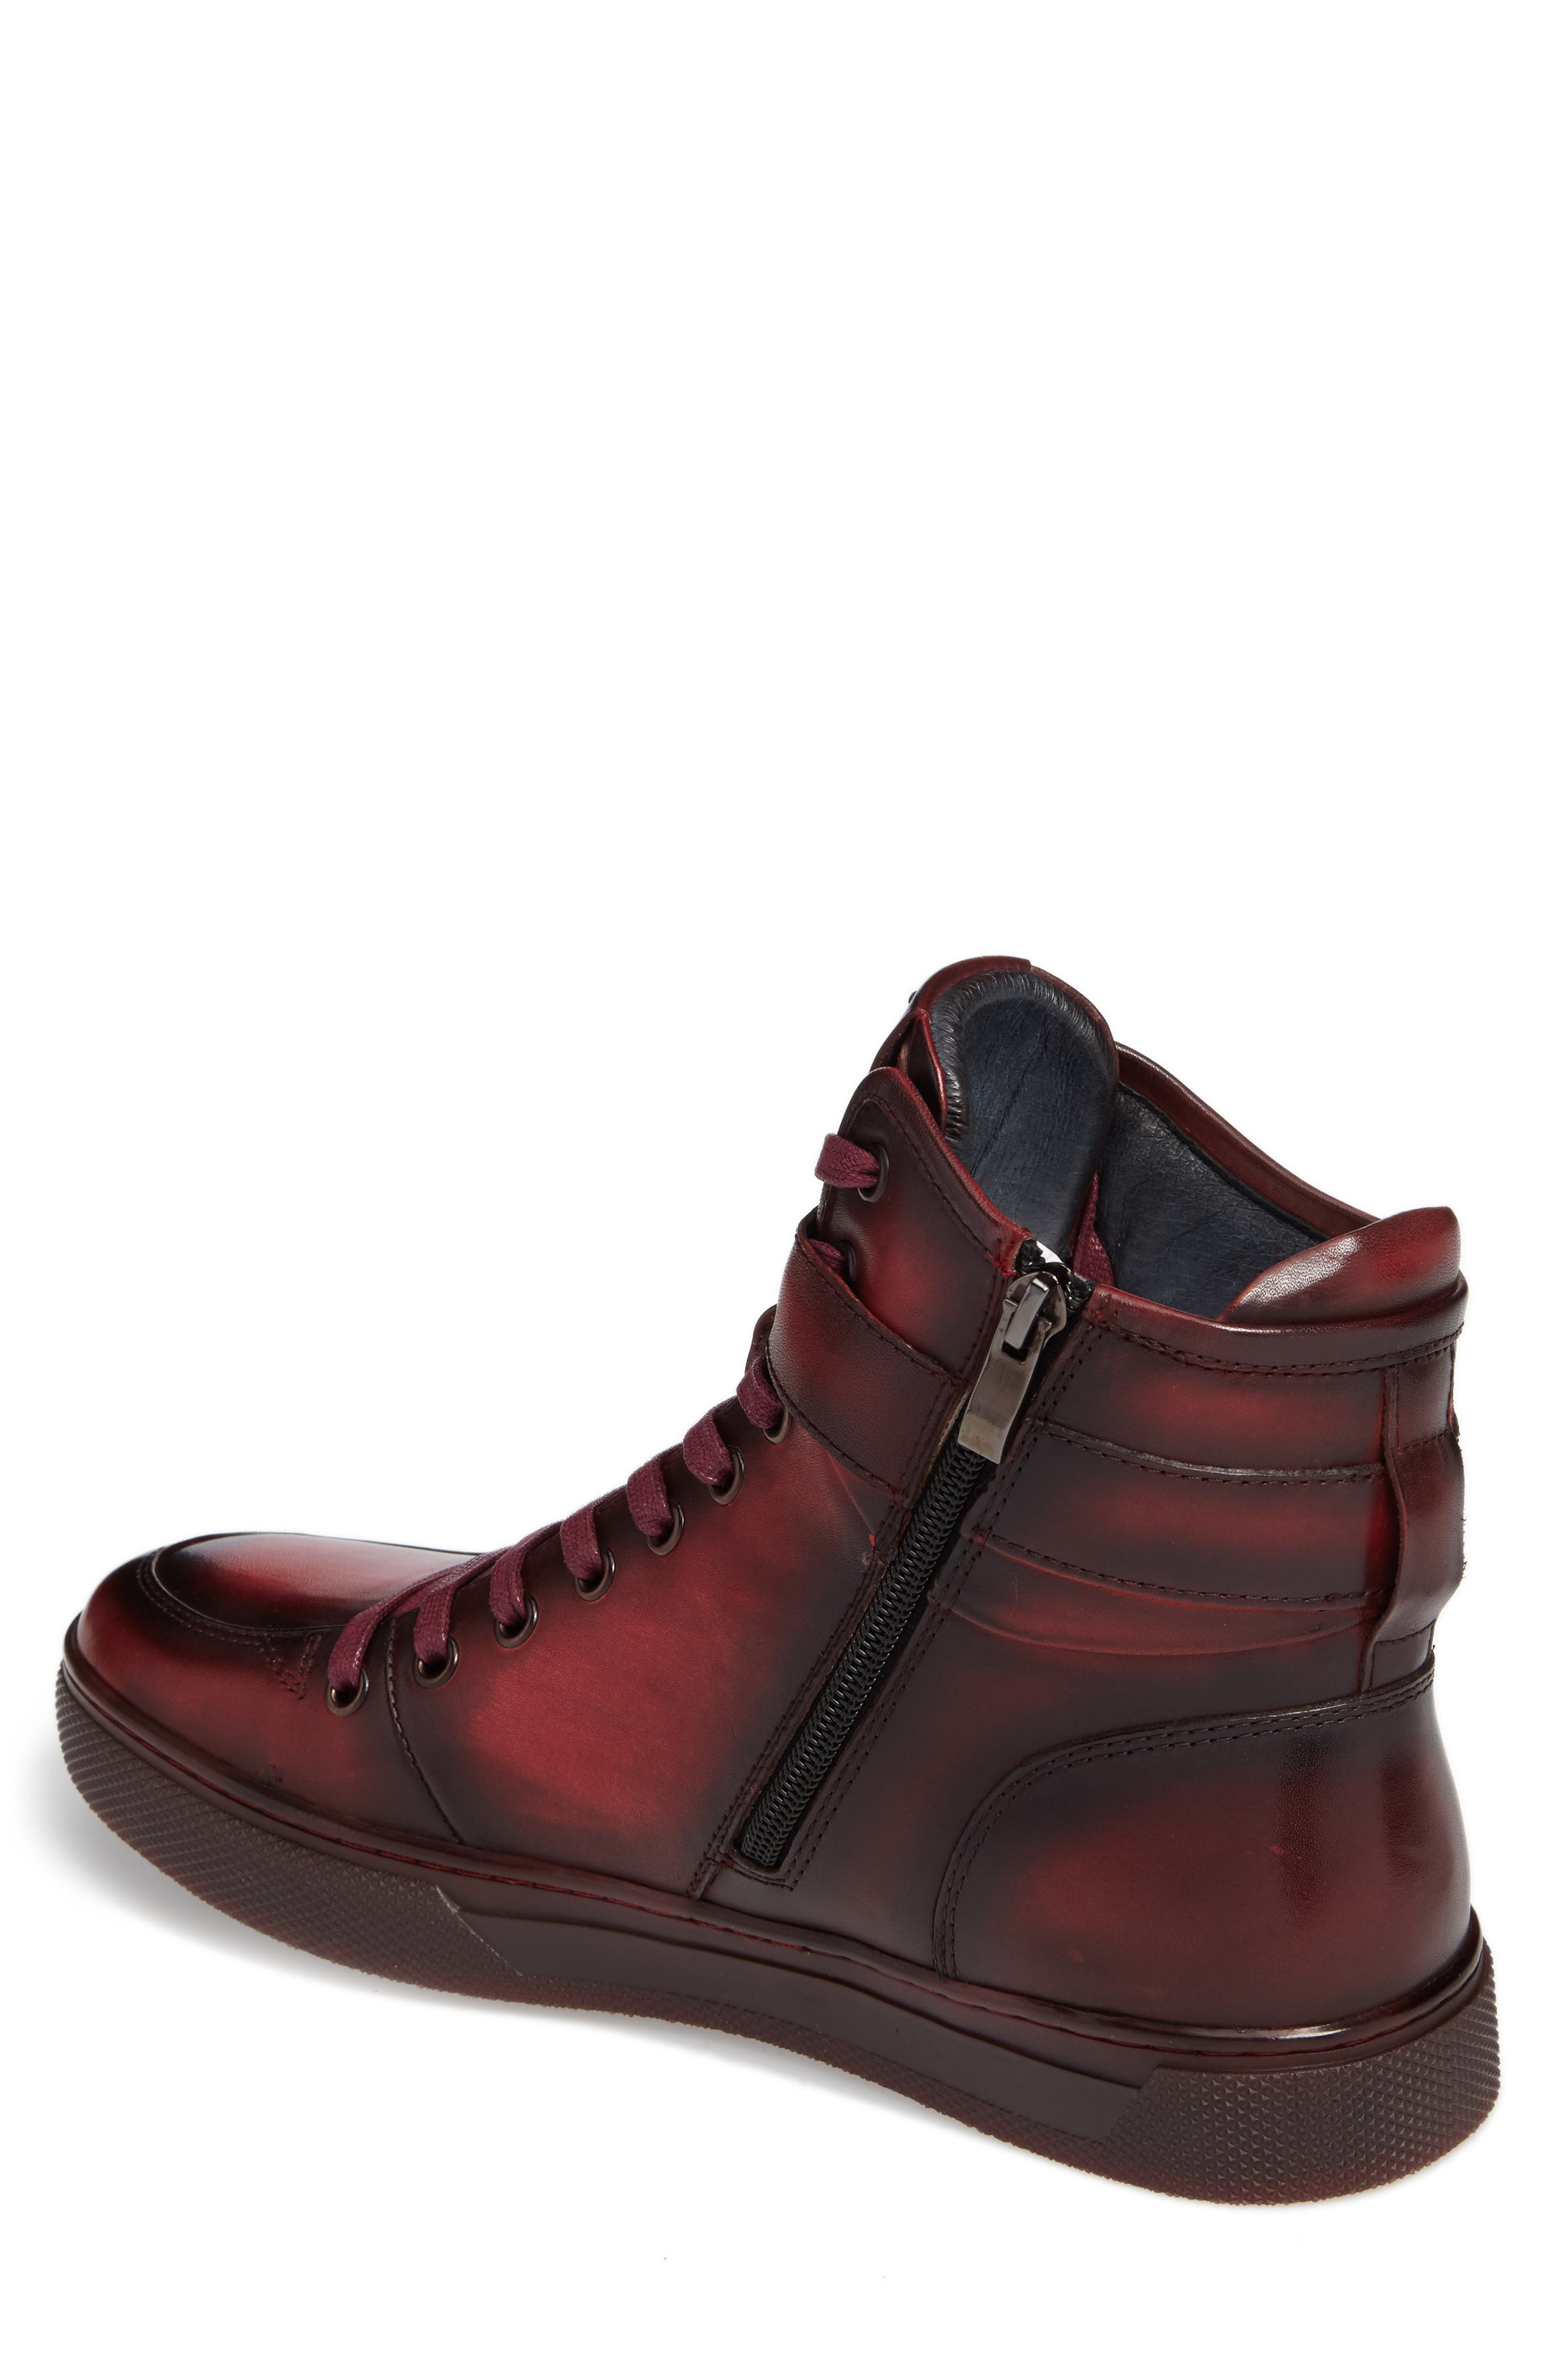 JUMP, Sullivan High Top Sneaker, Alternate thumbnail 2, color, RUBY